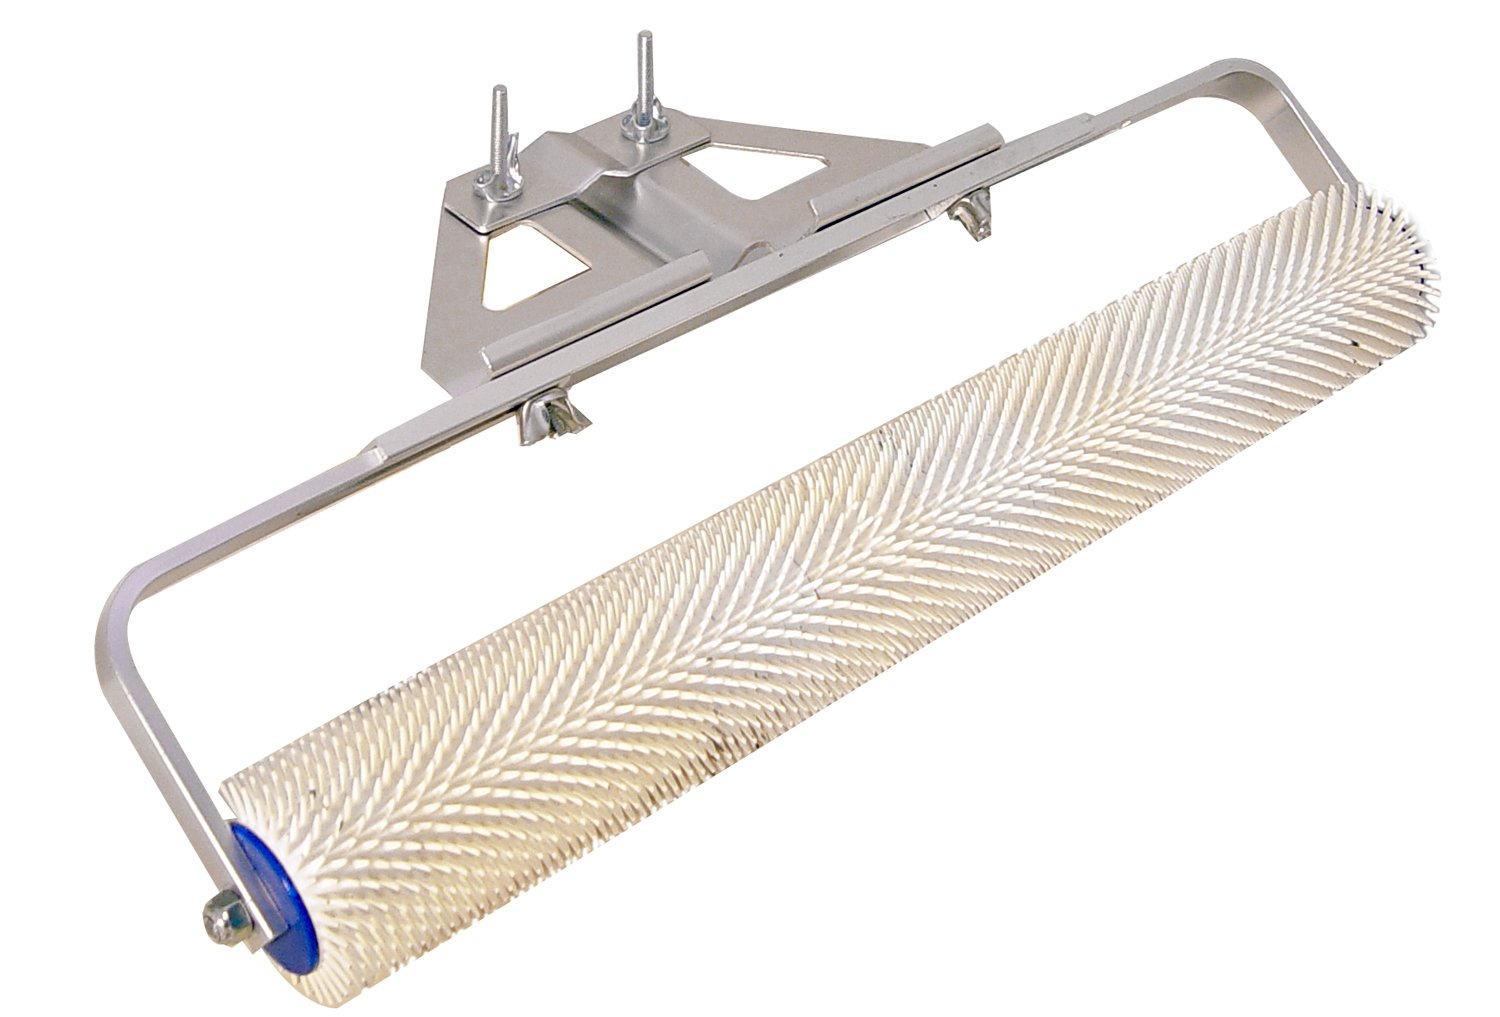 Bon 82-914 Spiked Roller 13-/16'' Plastic 30'' With Bracket by BON